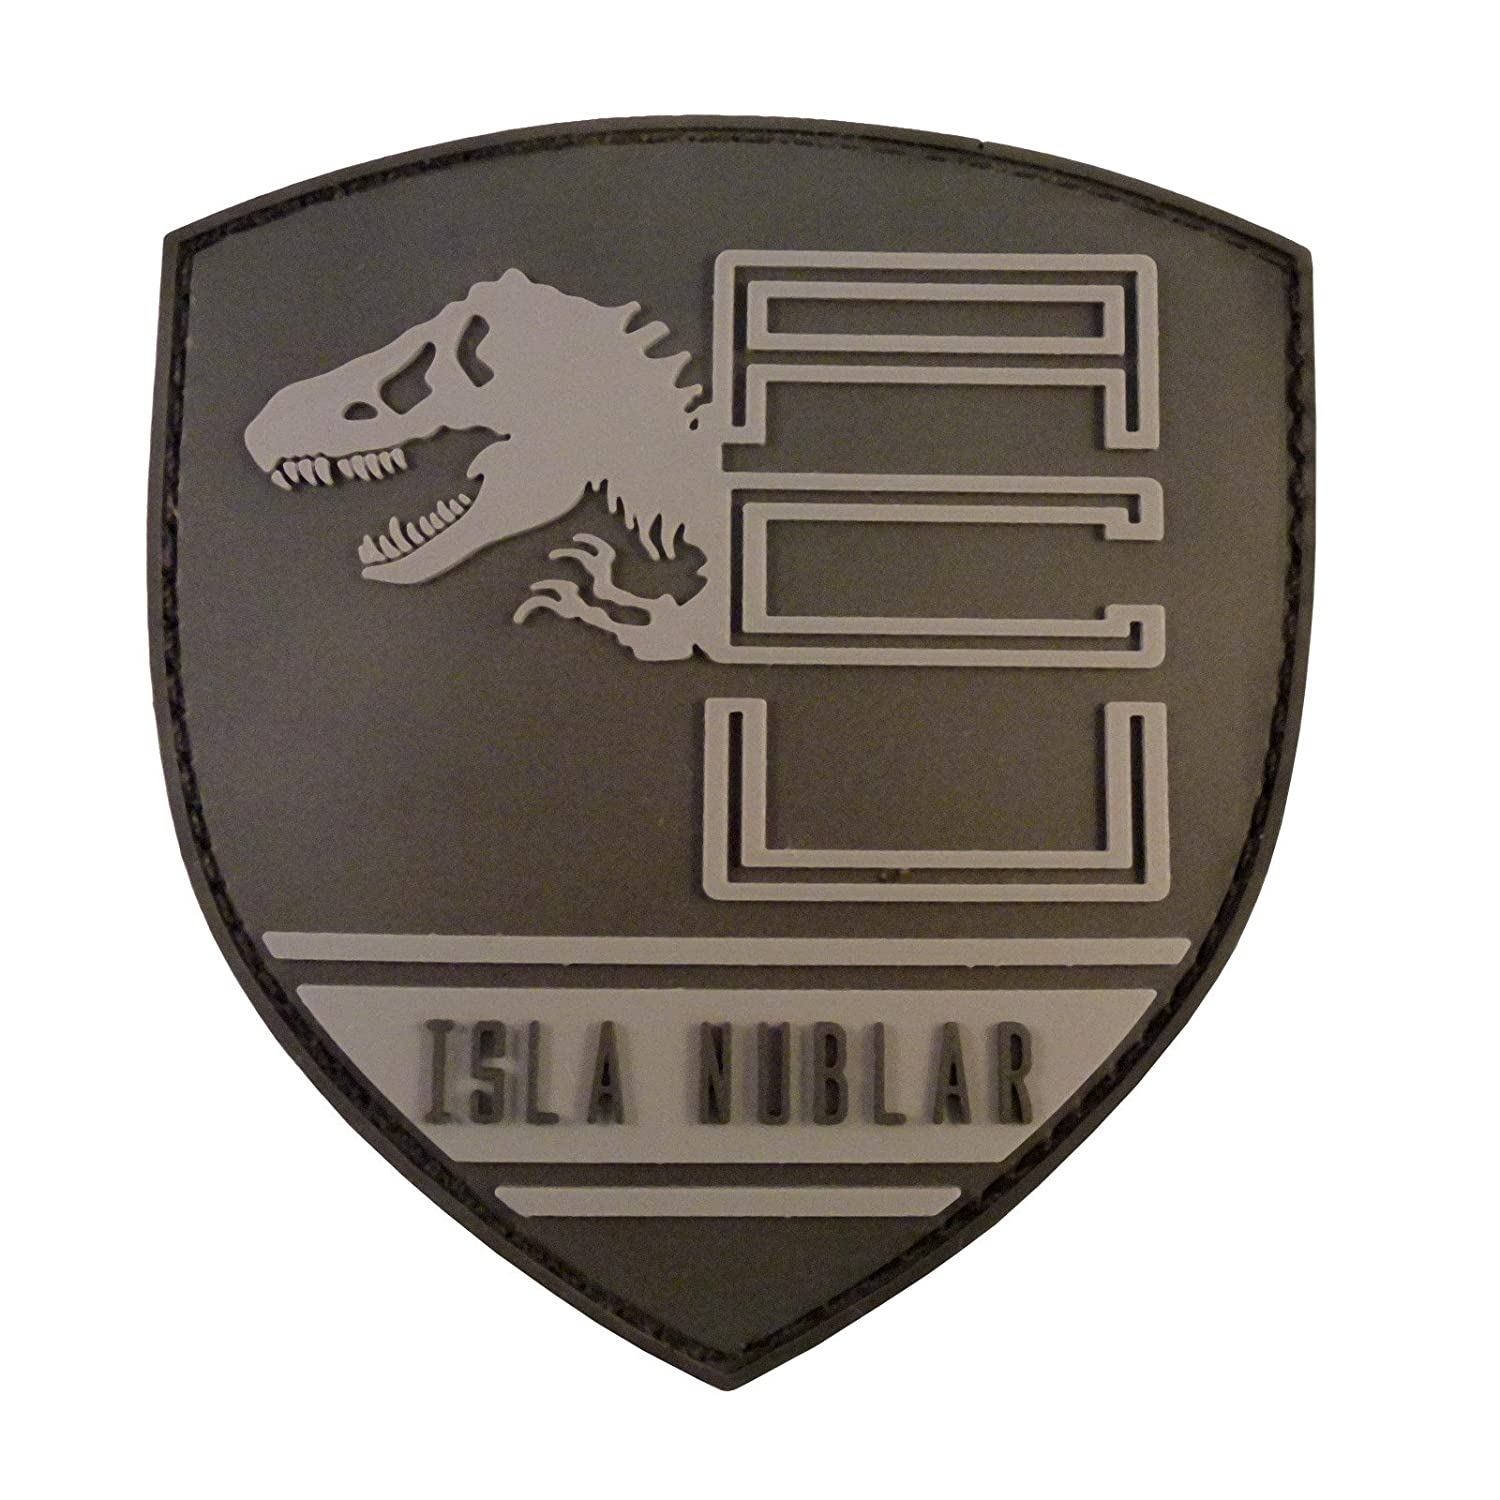 Jurassic World Isla Nublar Shield Collector PVC 3D Rubber Hook& Loop Patch 2AFTER1 P.1725.1.V